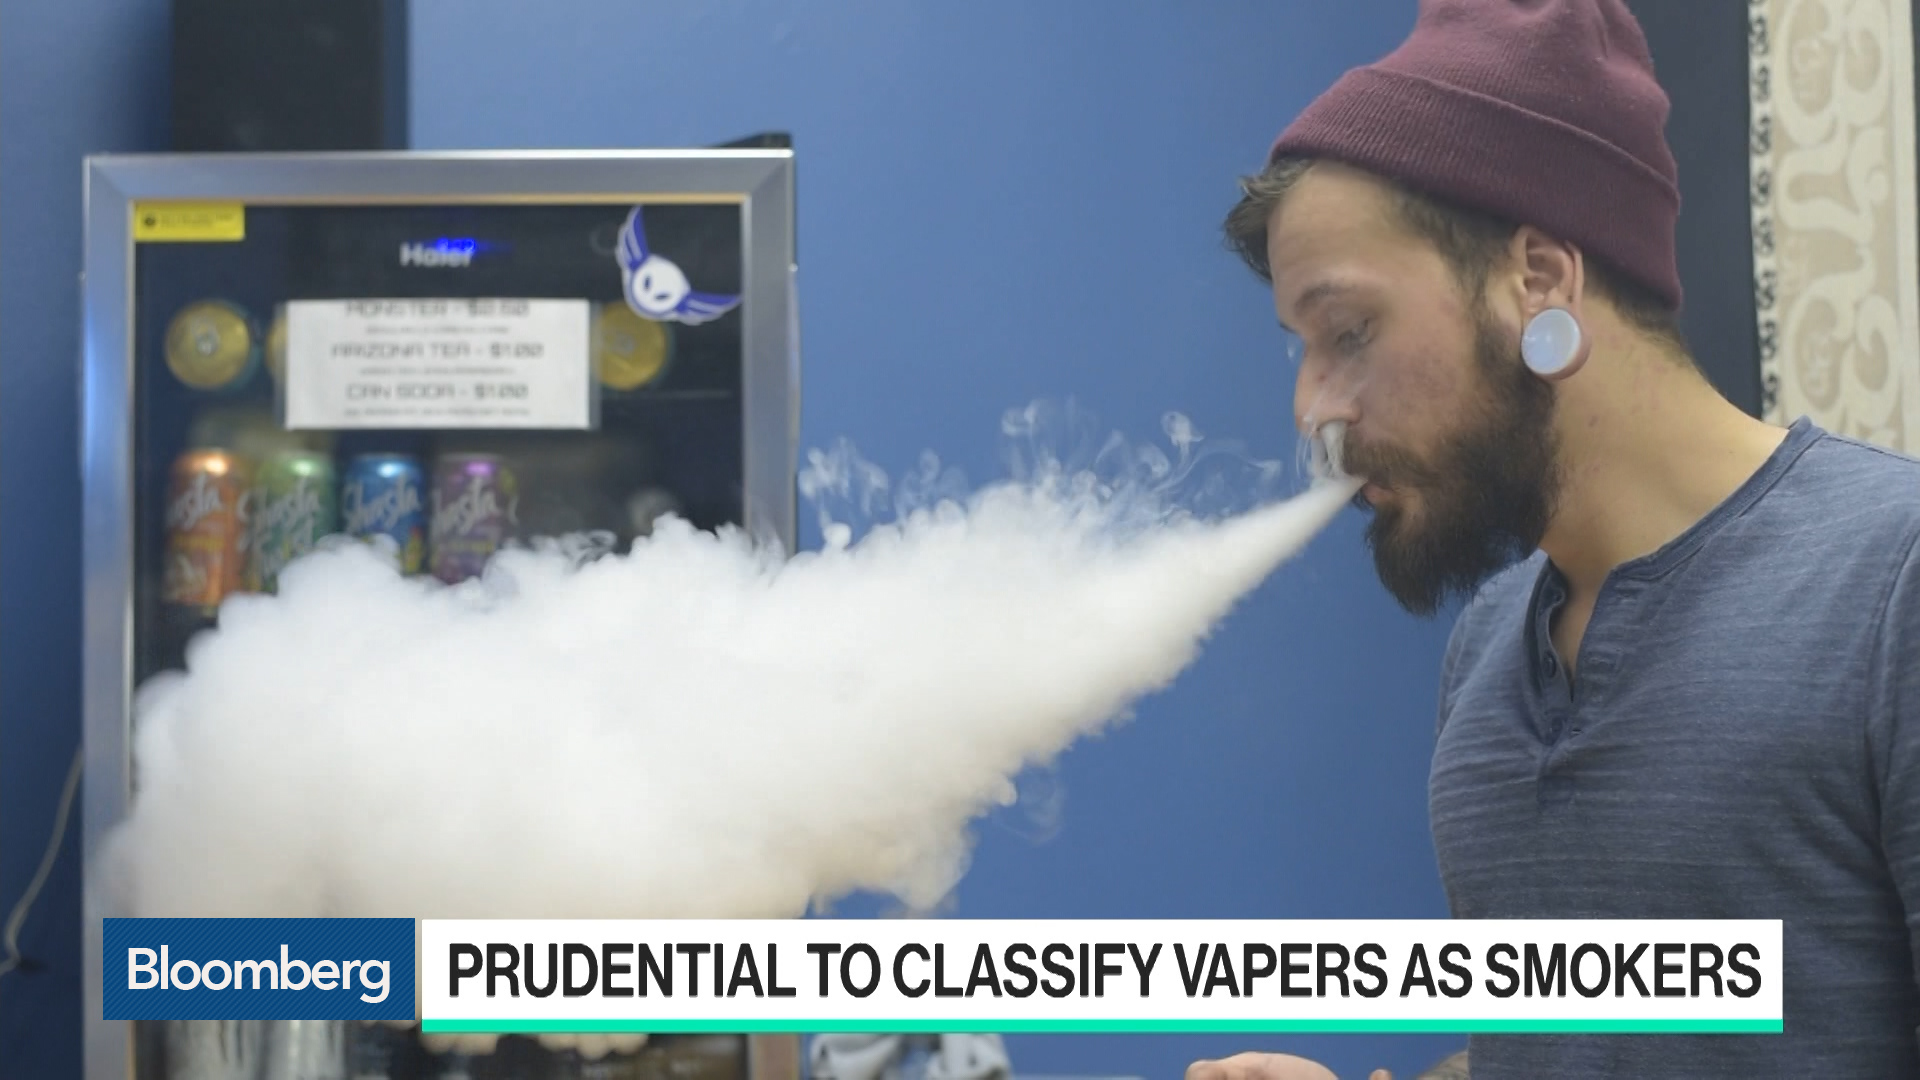 Prudential to Classify Vapers as Smokers